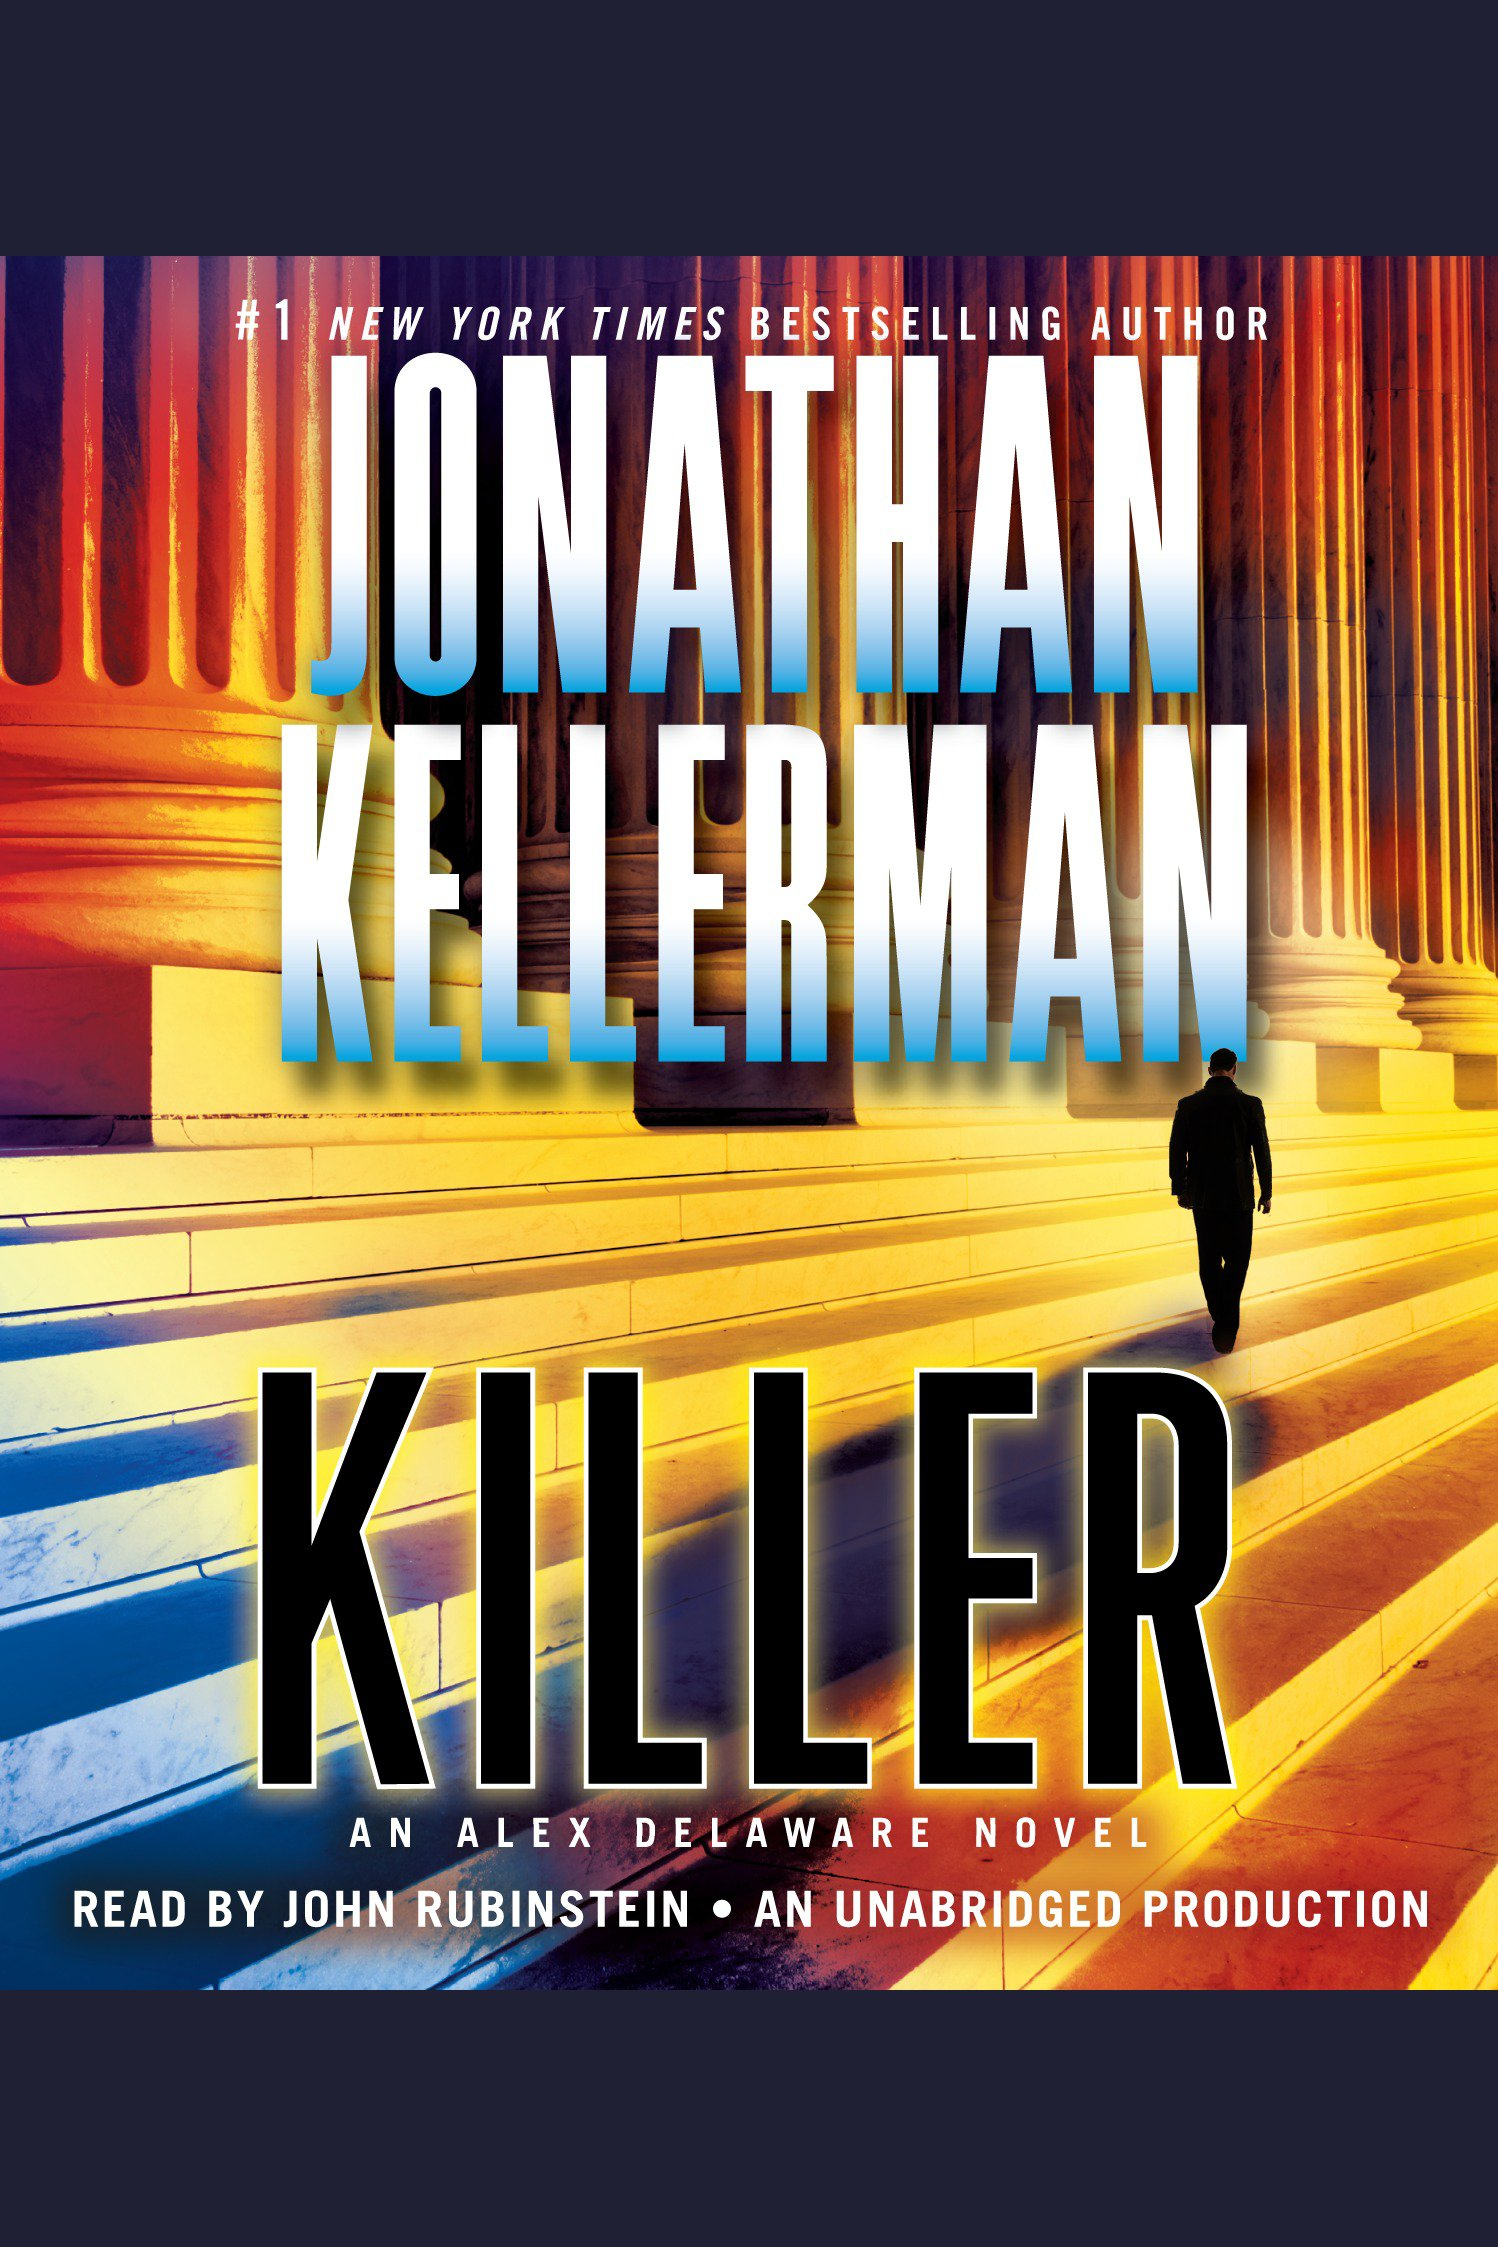 Killer an Alex Delaware novel cover image